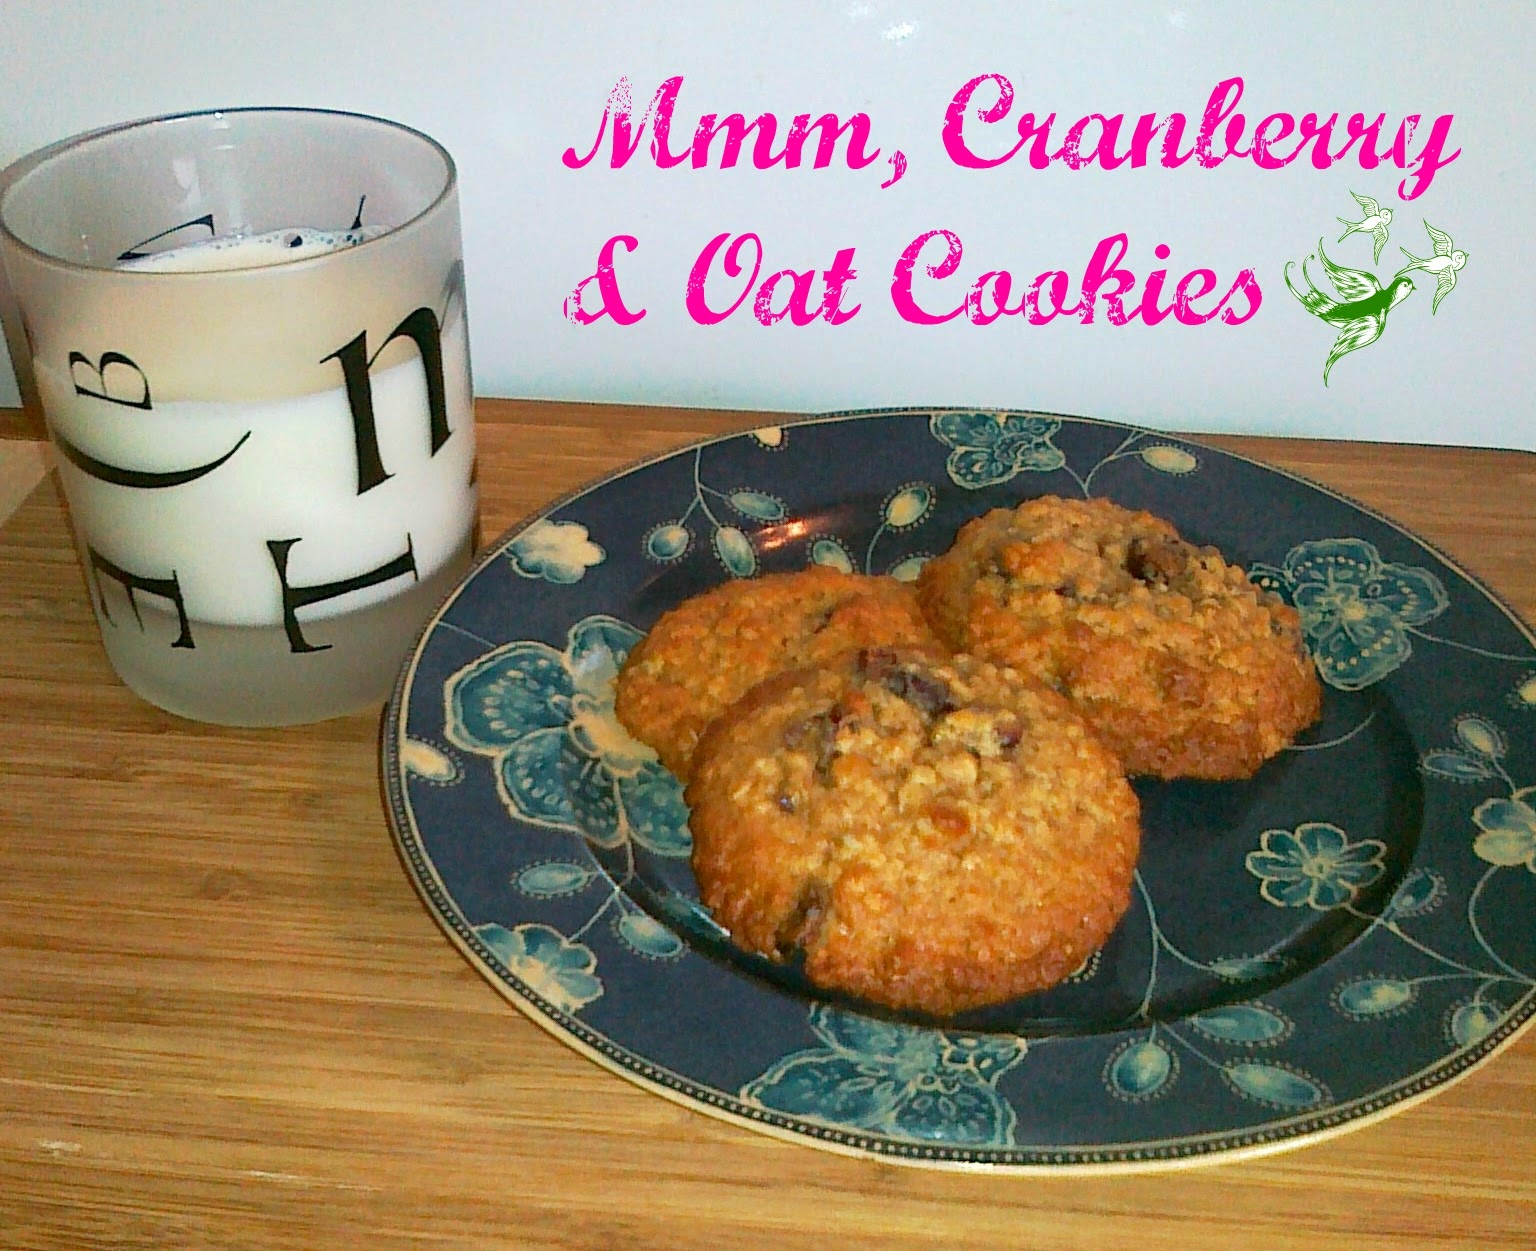 Cranberry & Oat Cookies